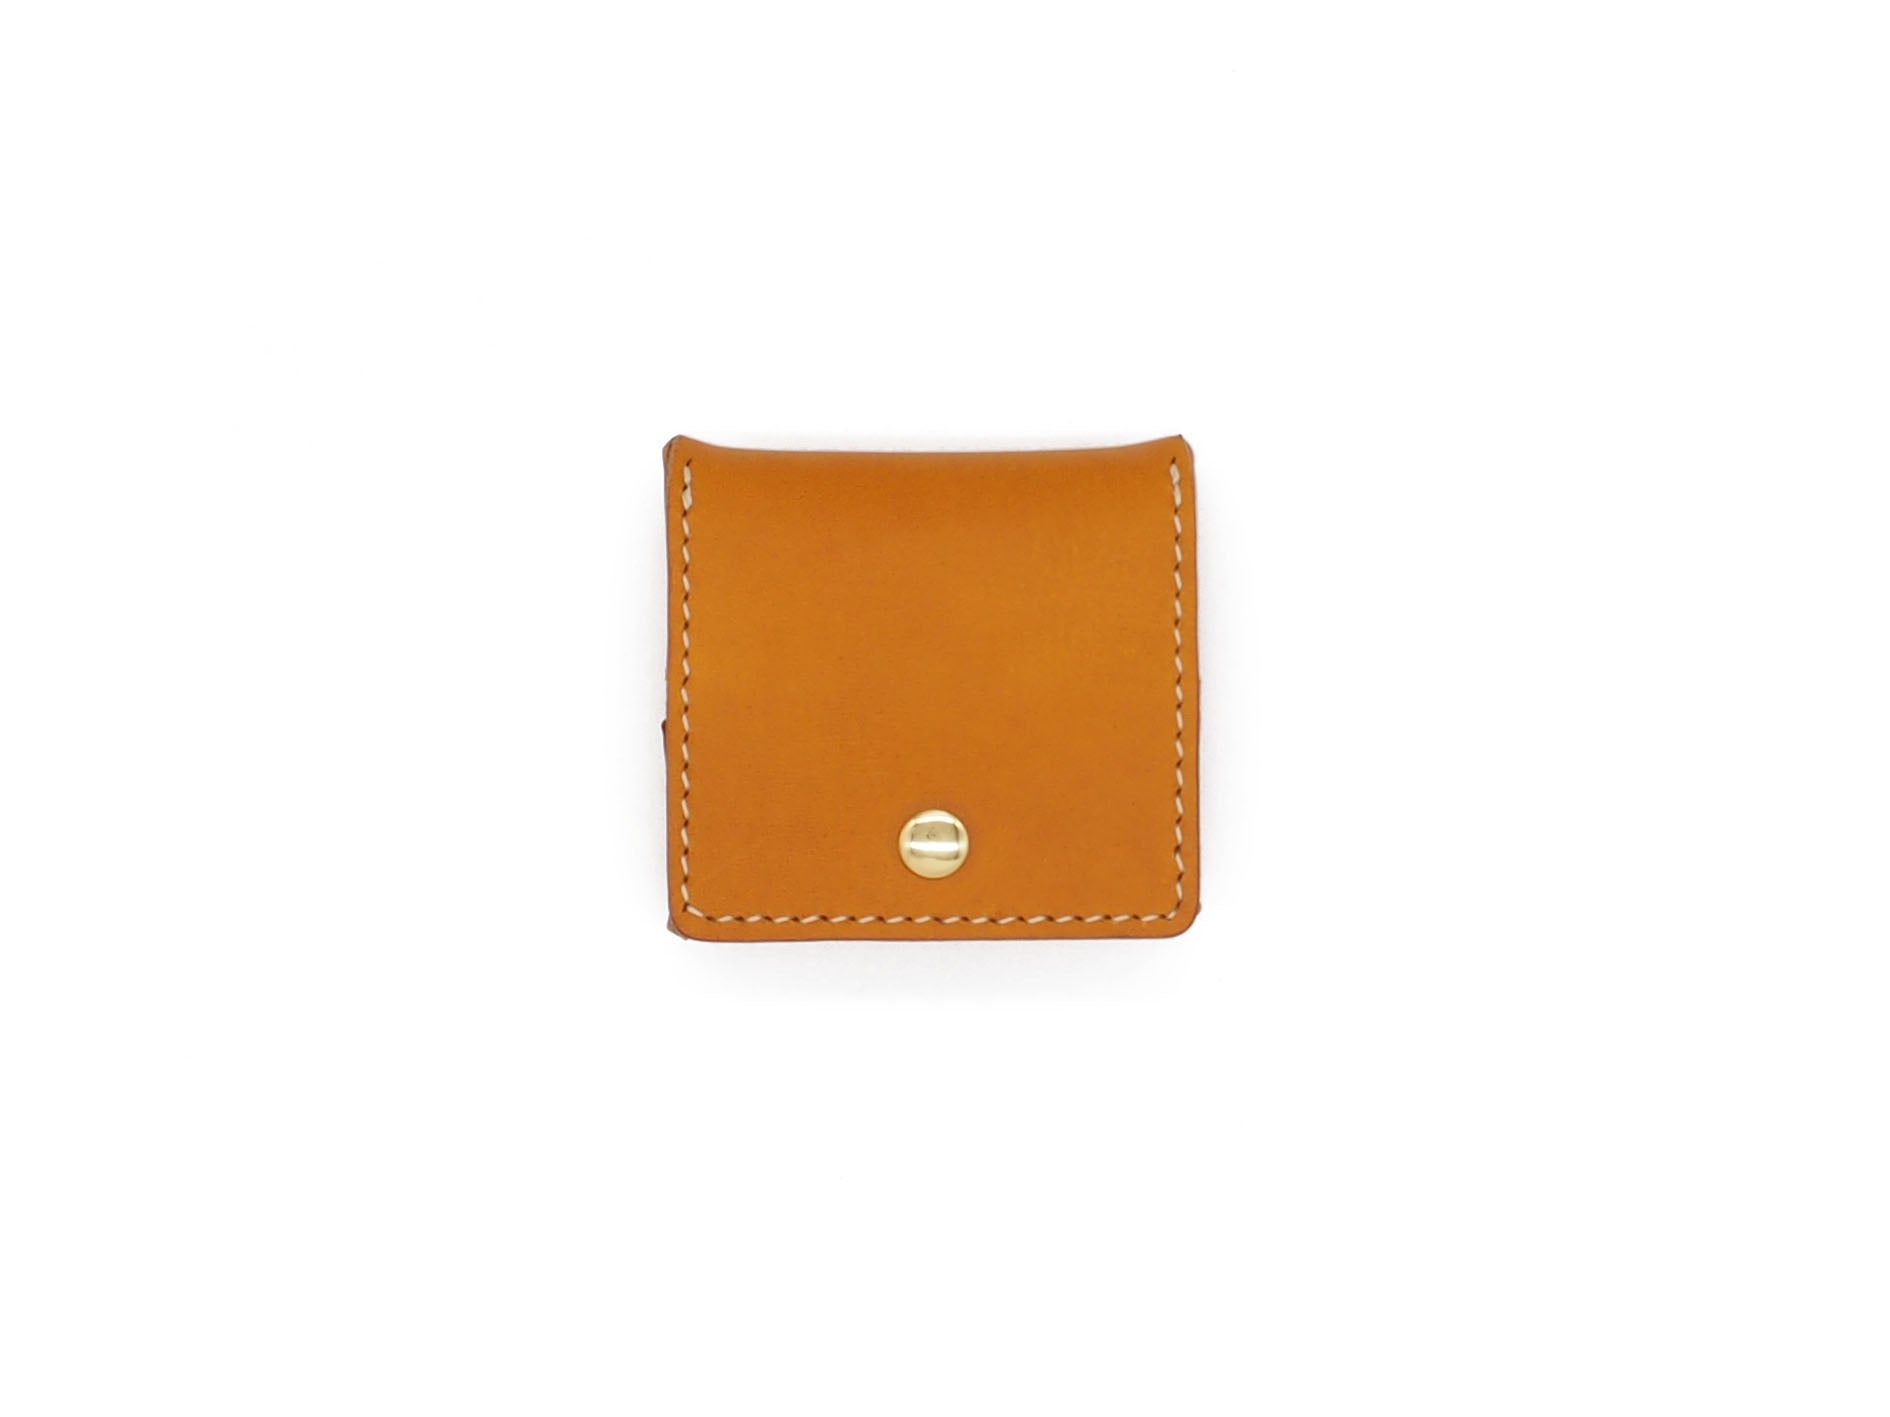 Tile - Coin Case In Mustard Buttero